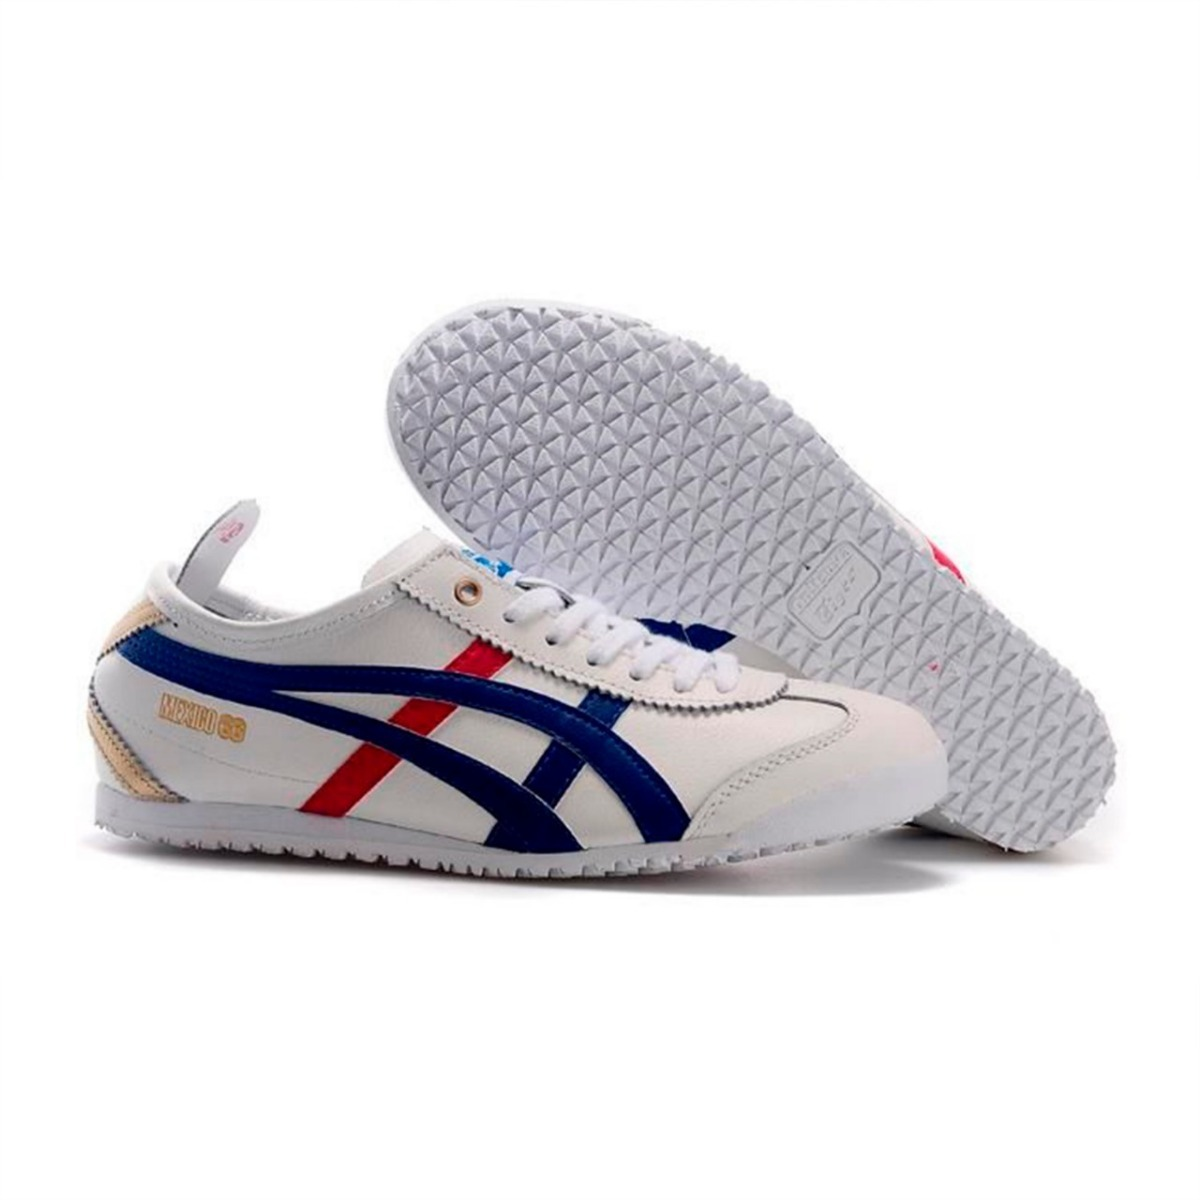 on sale 9a11d 8c514 Onitsuka Tiger Mexico 66 Gold Envio Inmediato